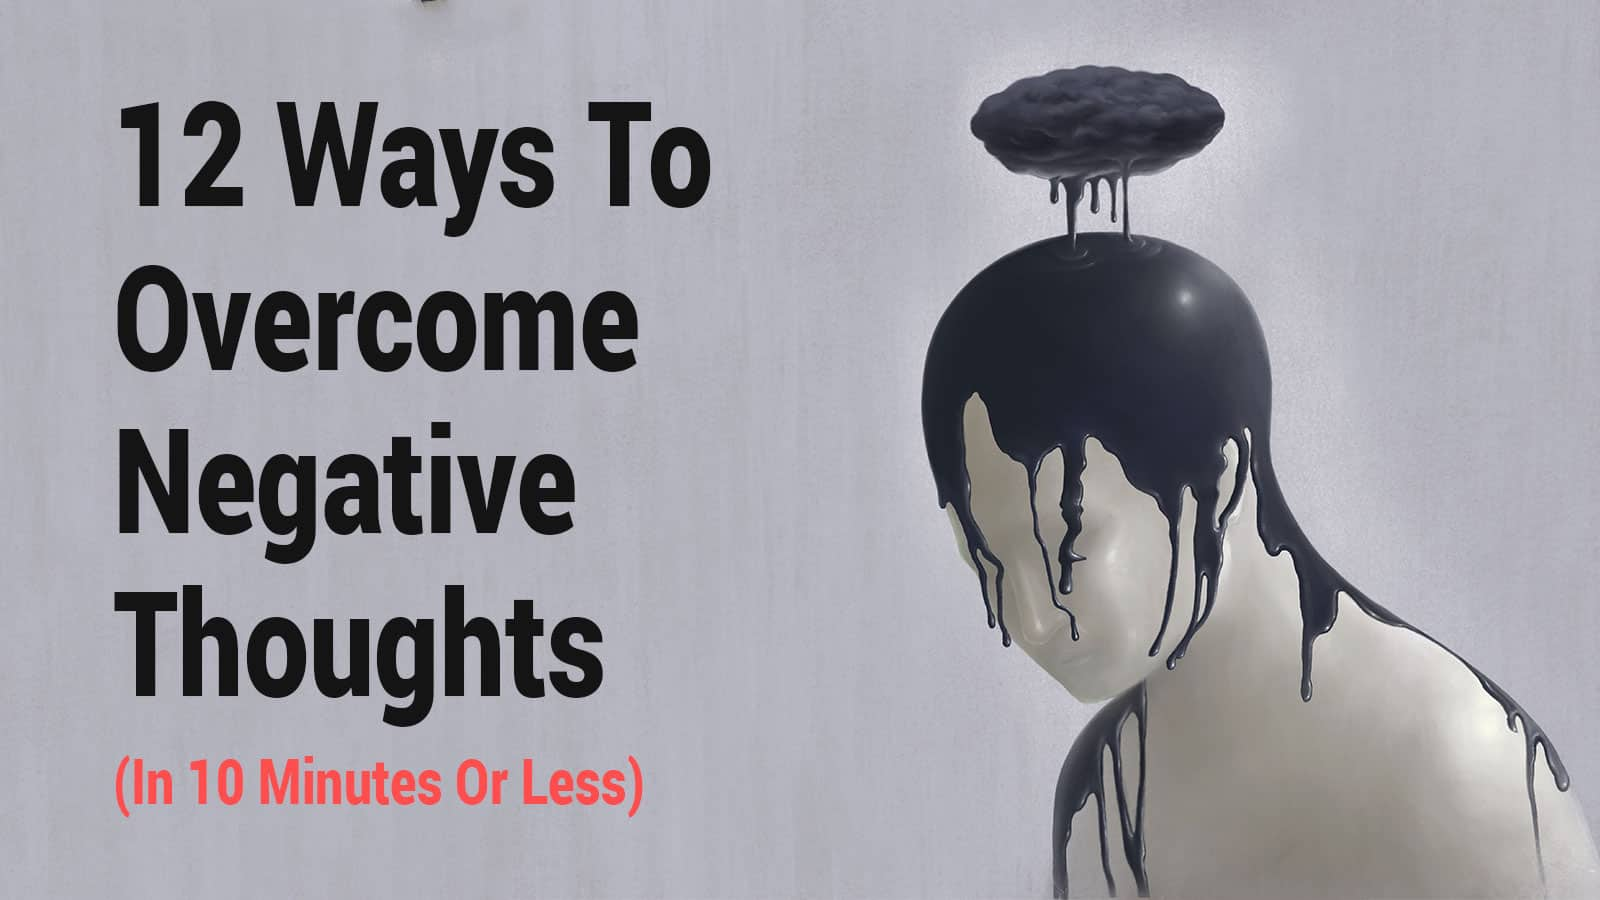 12 Ways To Overcome Negative Thoughts In 10 Minutes Or